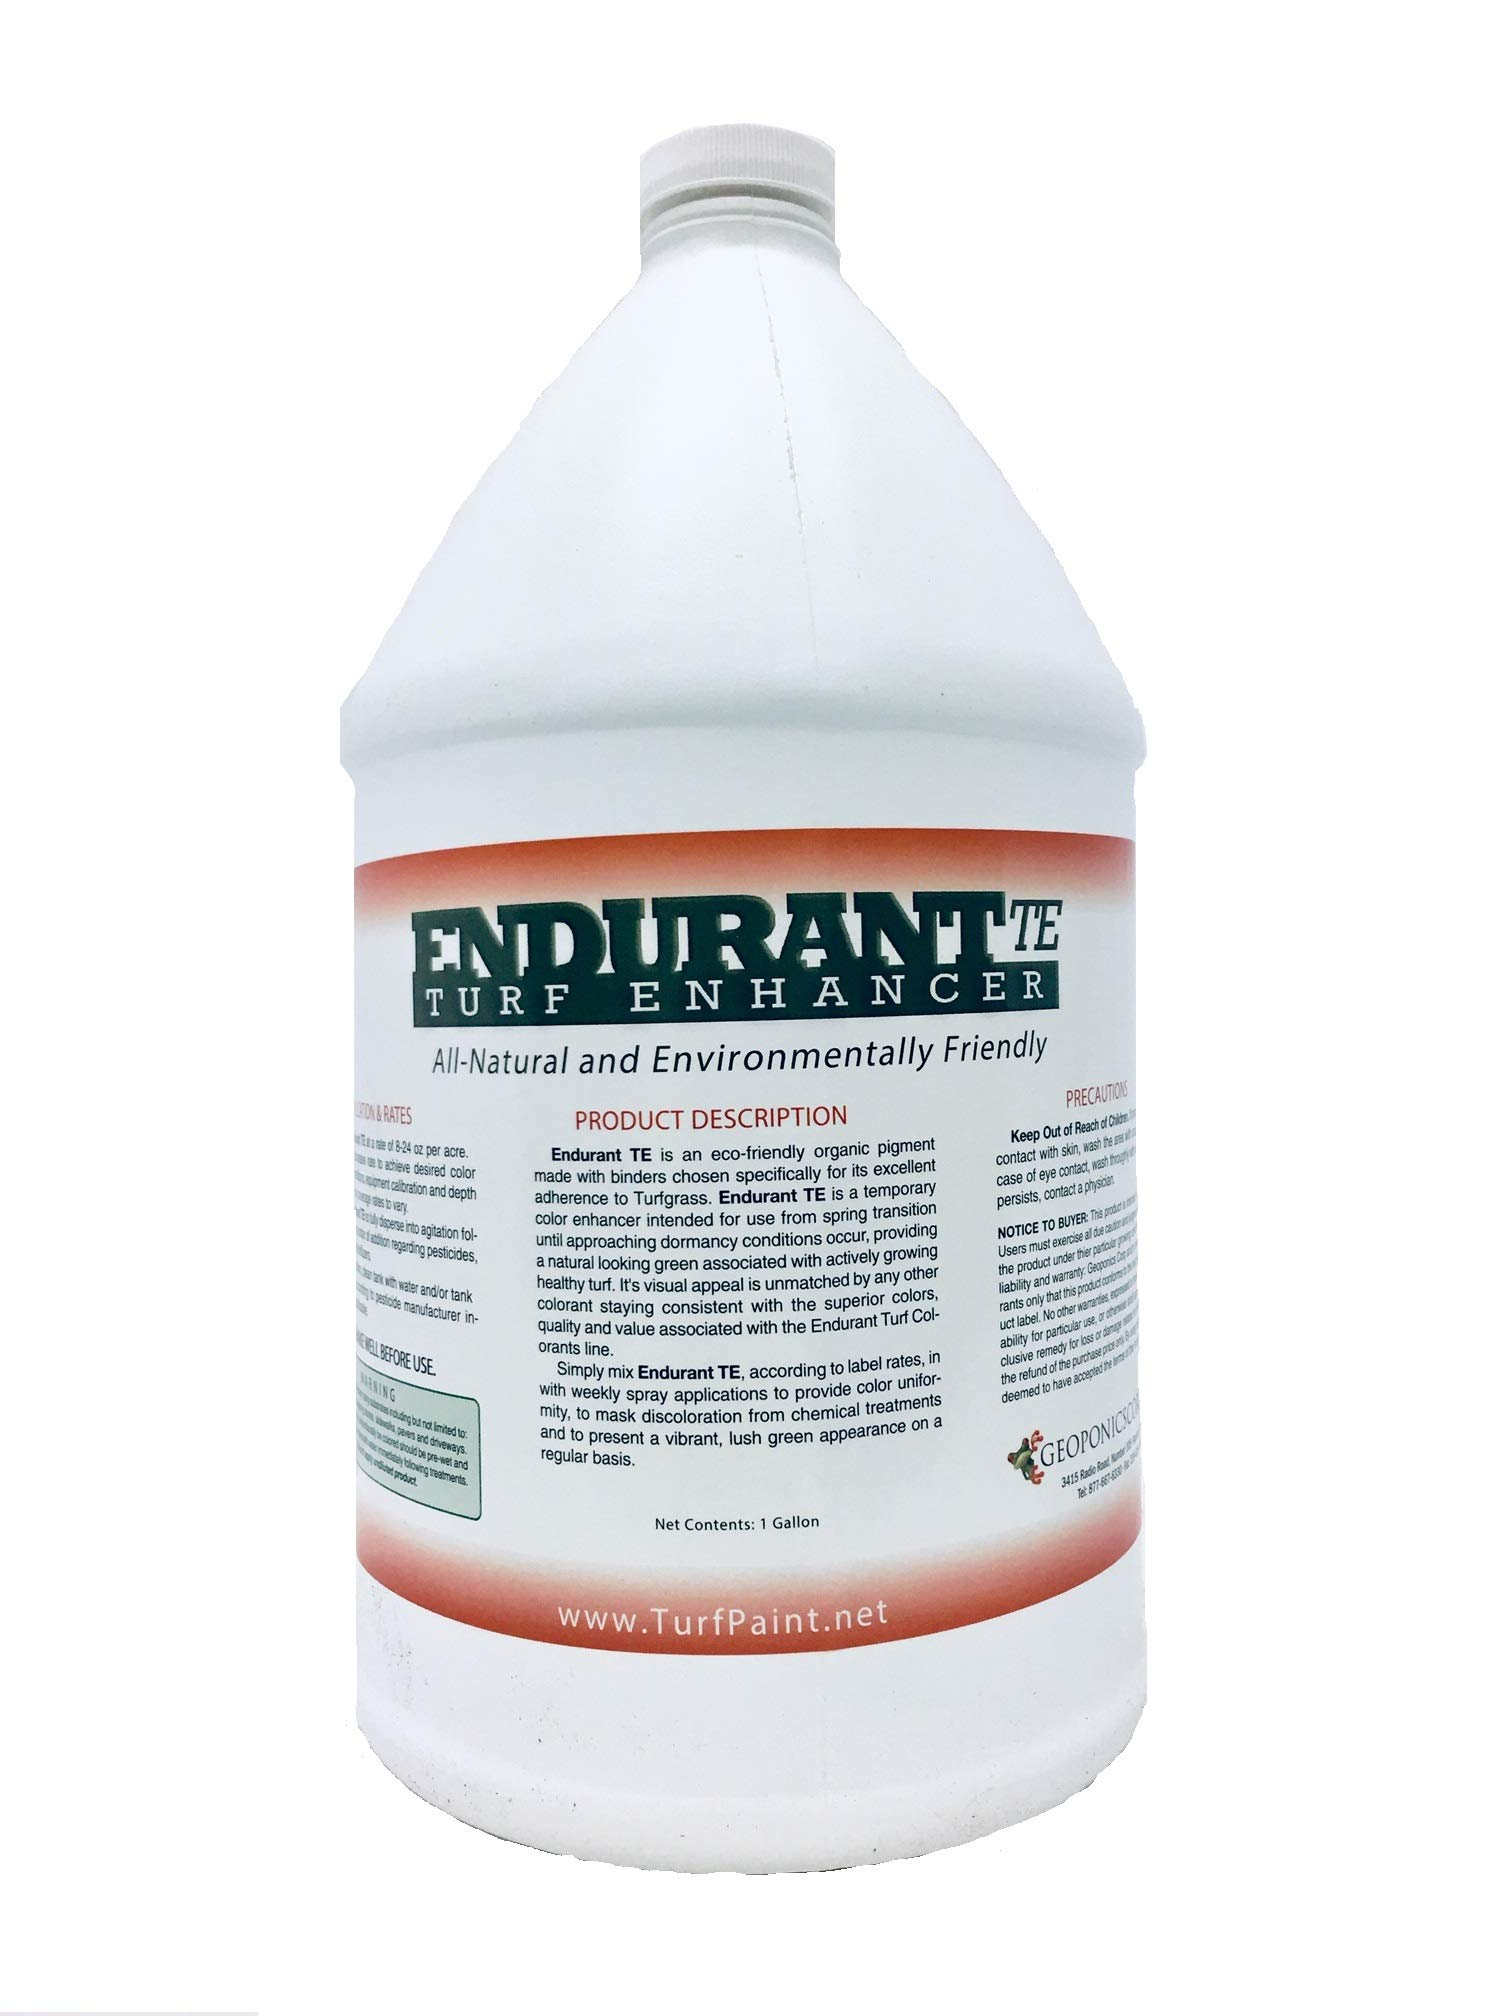 Geoponics Endurant TE (Turf Enhancer) 1 Gallon